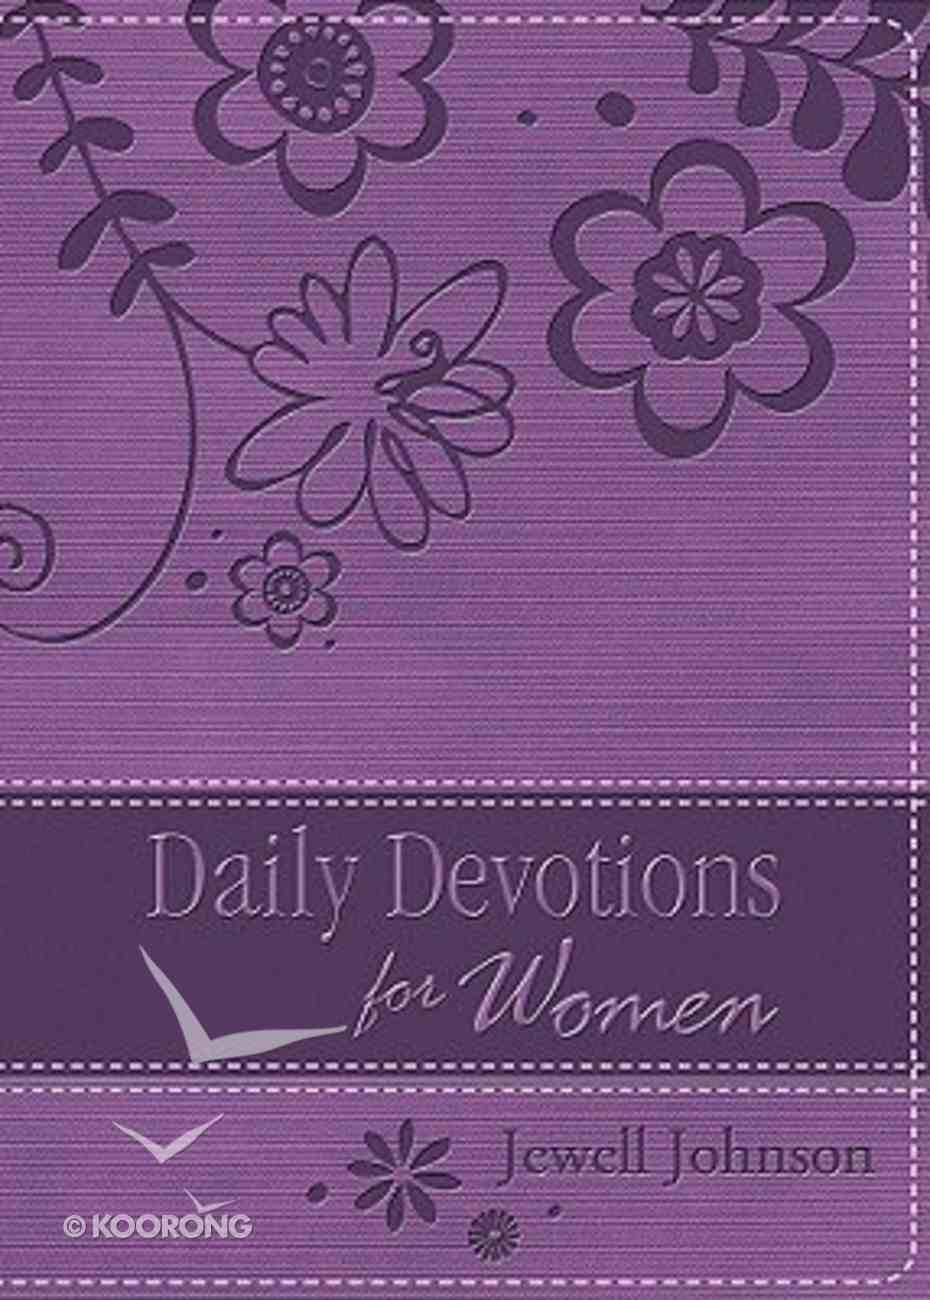 Daily Devotions For Women Imitation Leather